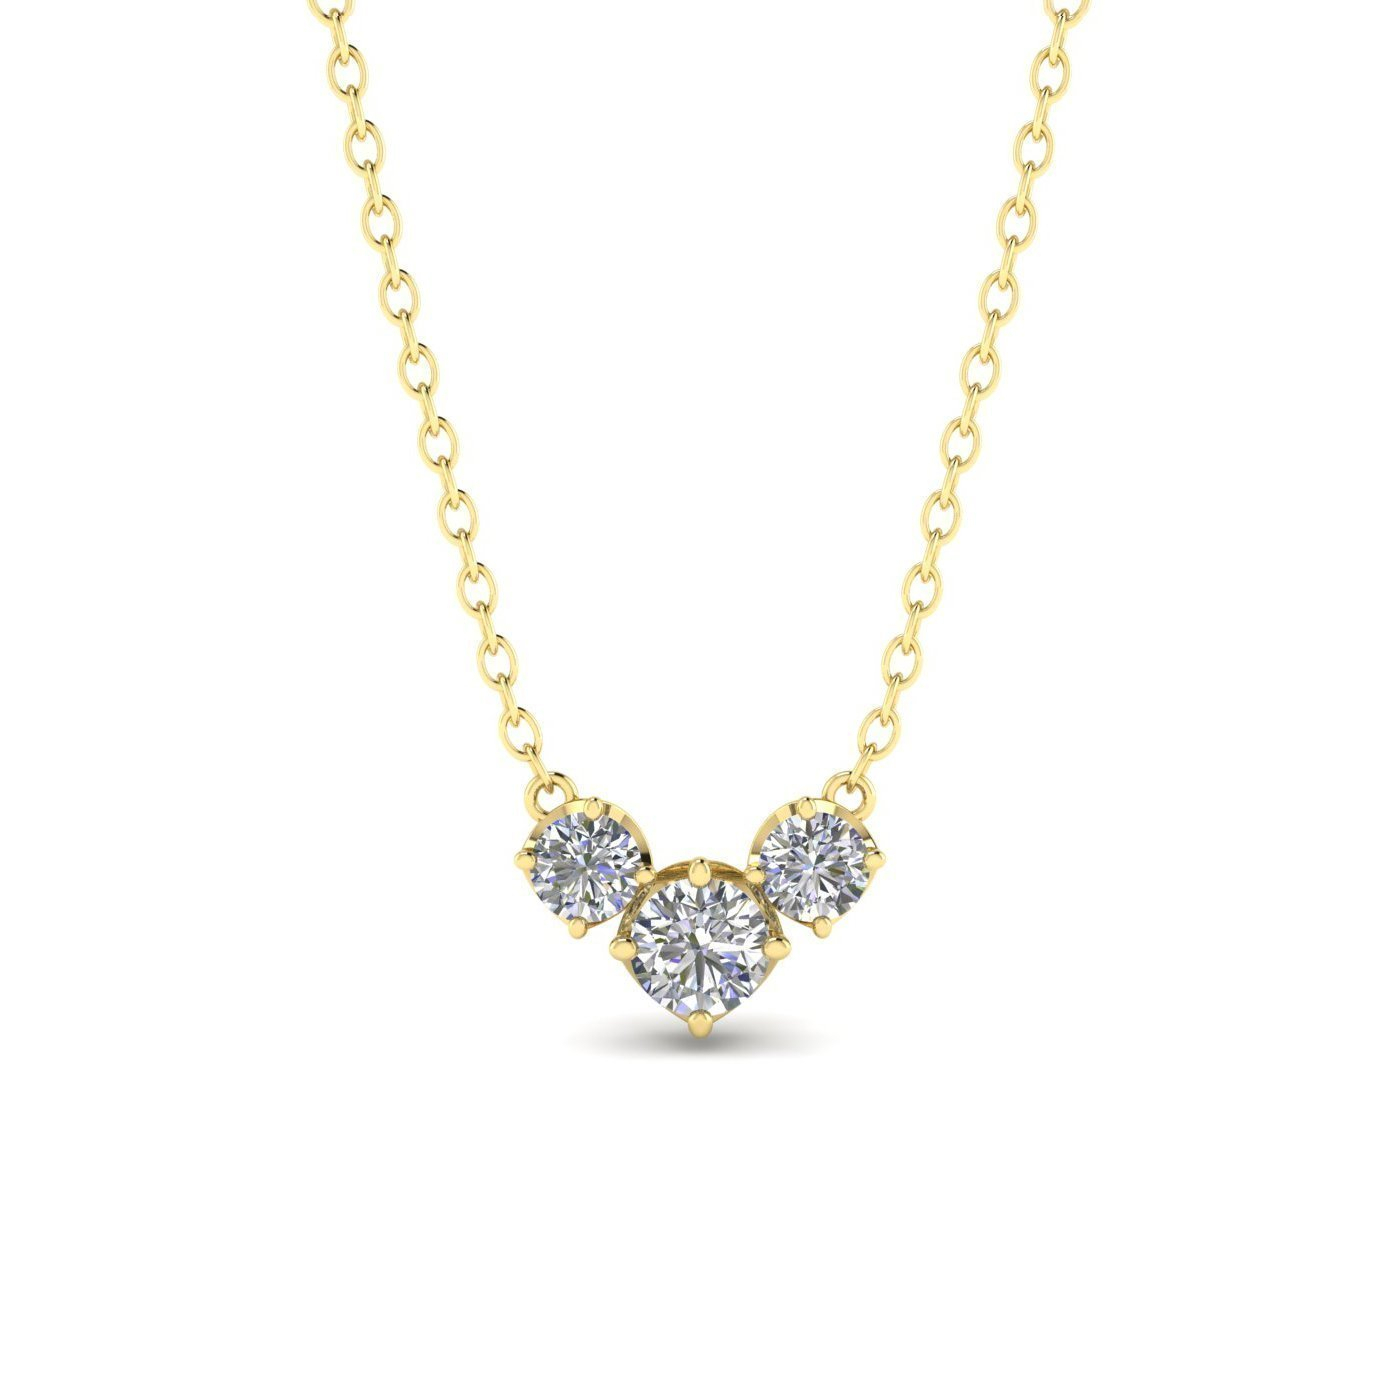 Details About 14k Yellow Gold 3 Stone Diamond Necklace – (View 10 of 25)